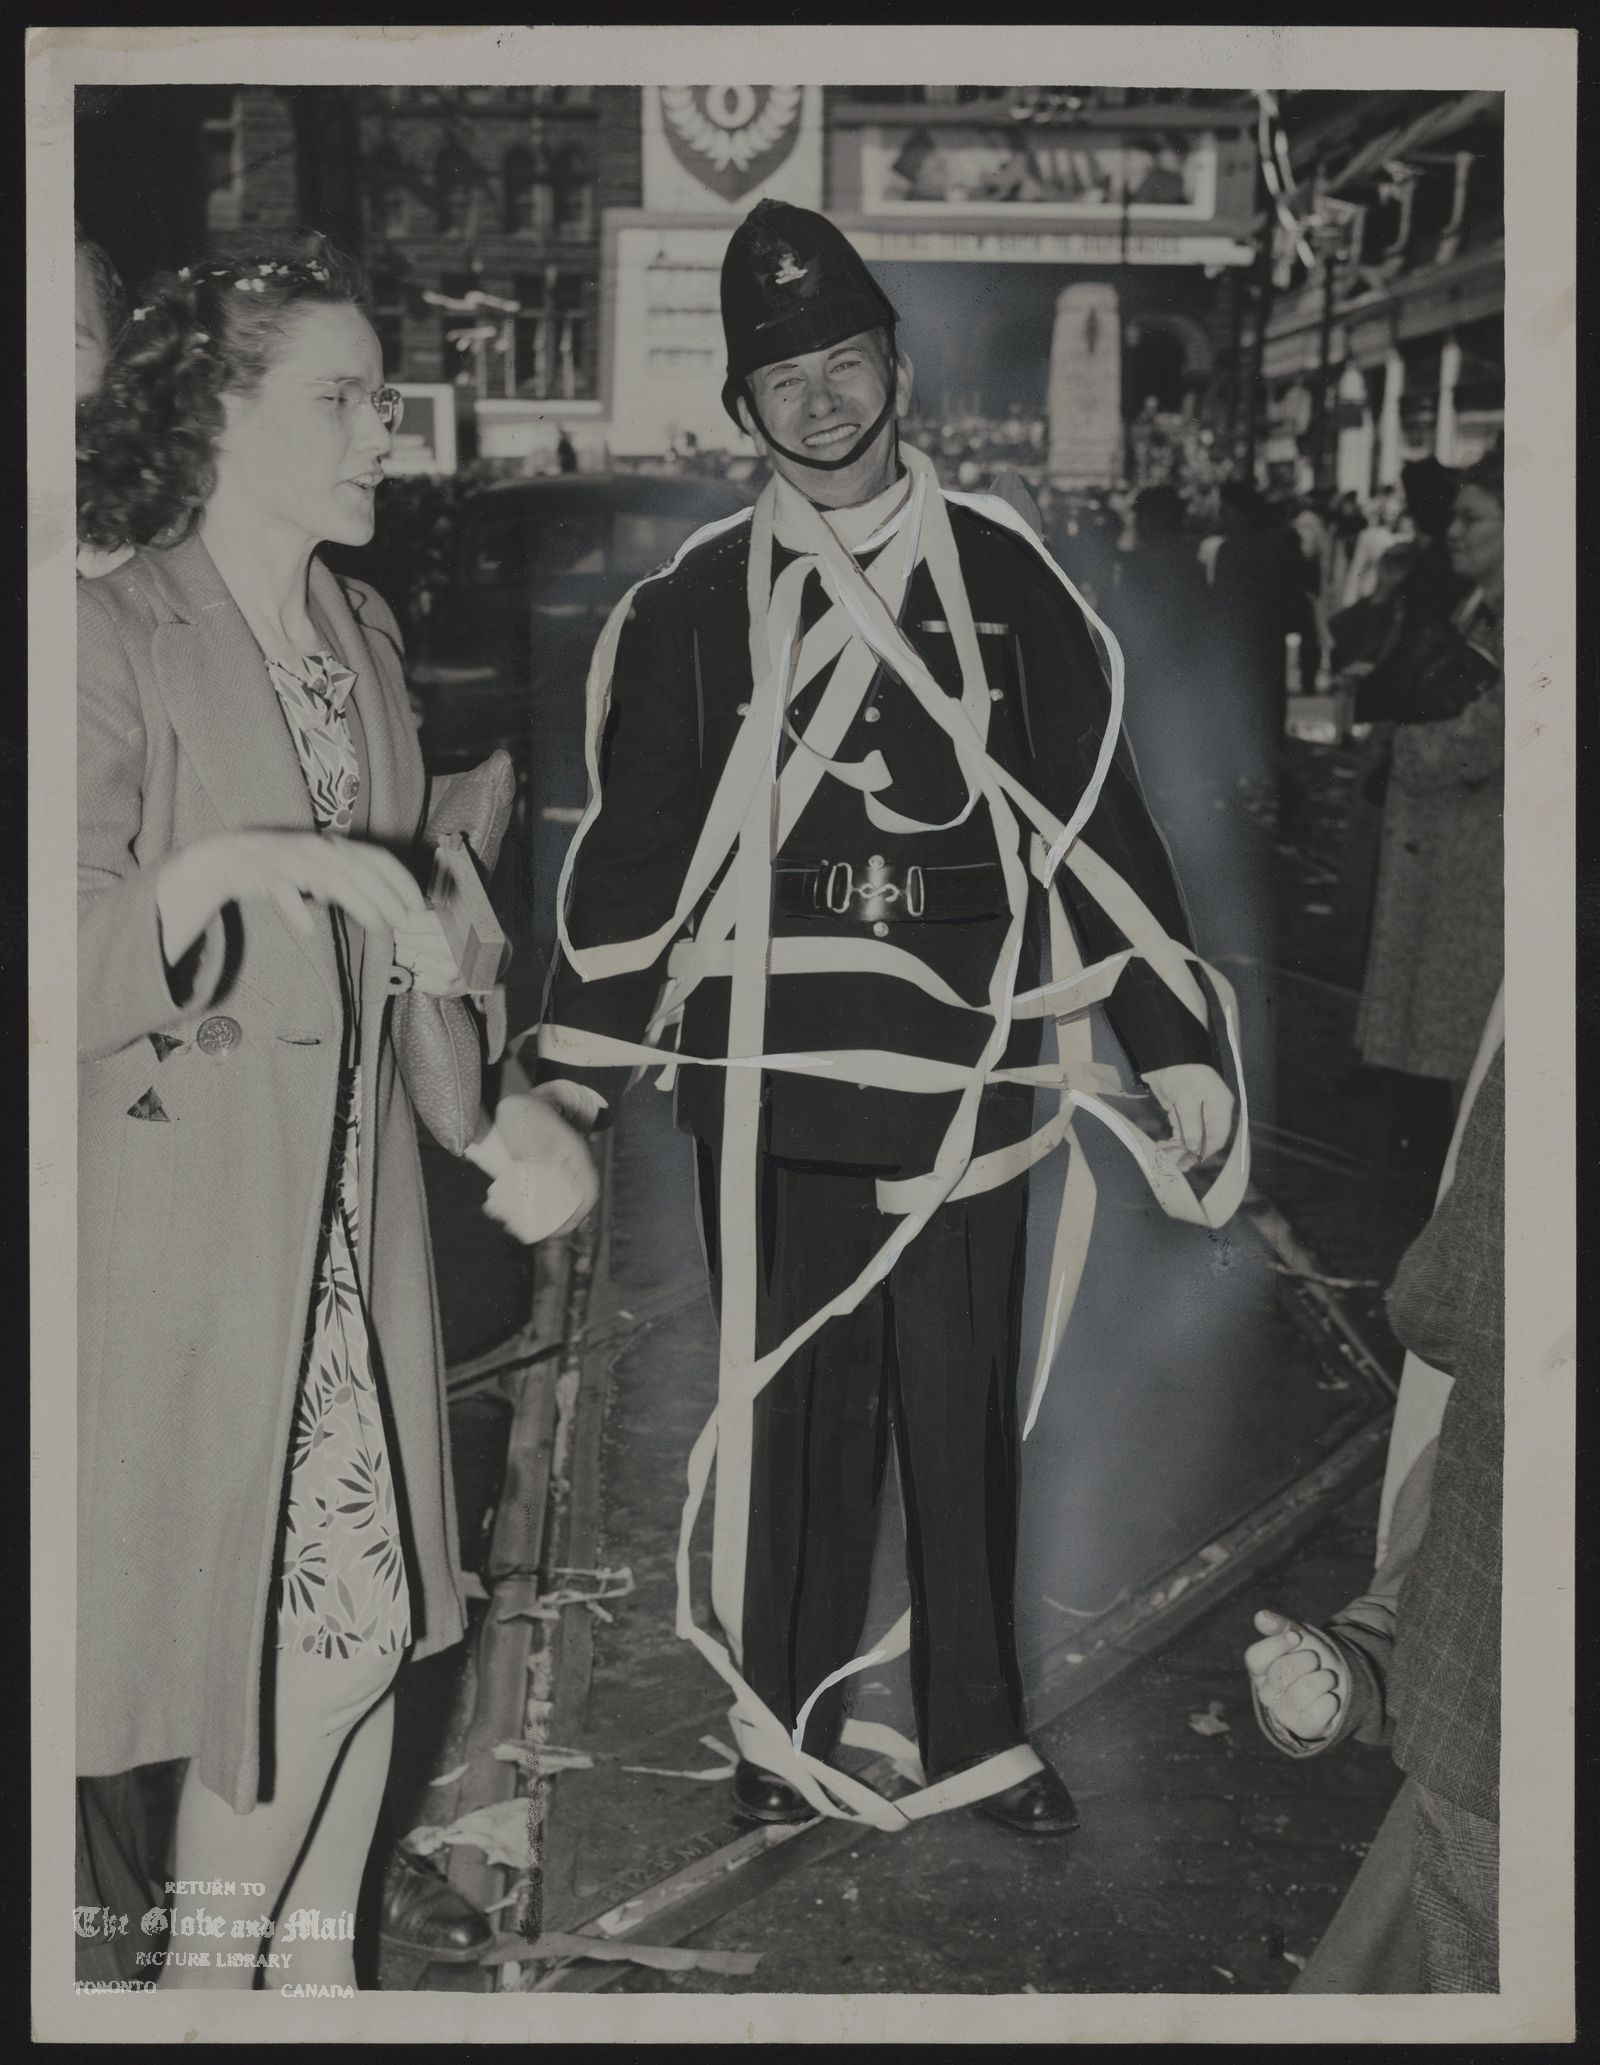 WORLD WAR II VE DAY PC HARRY CARROLL WAS FESTOONED WITH PAPER TAPE AS GAY THRONGS USED HIM FOR A MAYPOLE, HAD TO UNTANGLE HIMSELF SEVERAL TIMES AND RETIRE THRICE TO REMOVE LIPSTICK MARKS. [MAY 7, 1945 -- VICTORY IN EUROPE CELEBRATED IN TORONTO -- PC Harry Carroll was festooned with paper tape as gay throngs used him for a maypole, had to untangle himself several times and retire thrice to remove lipstick marks. Spontaneous celebratory parties and mass gatherings were held across the country on Monday, May 7, 1945 as the first